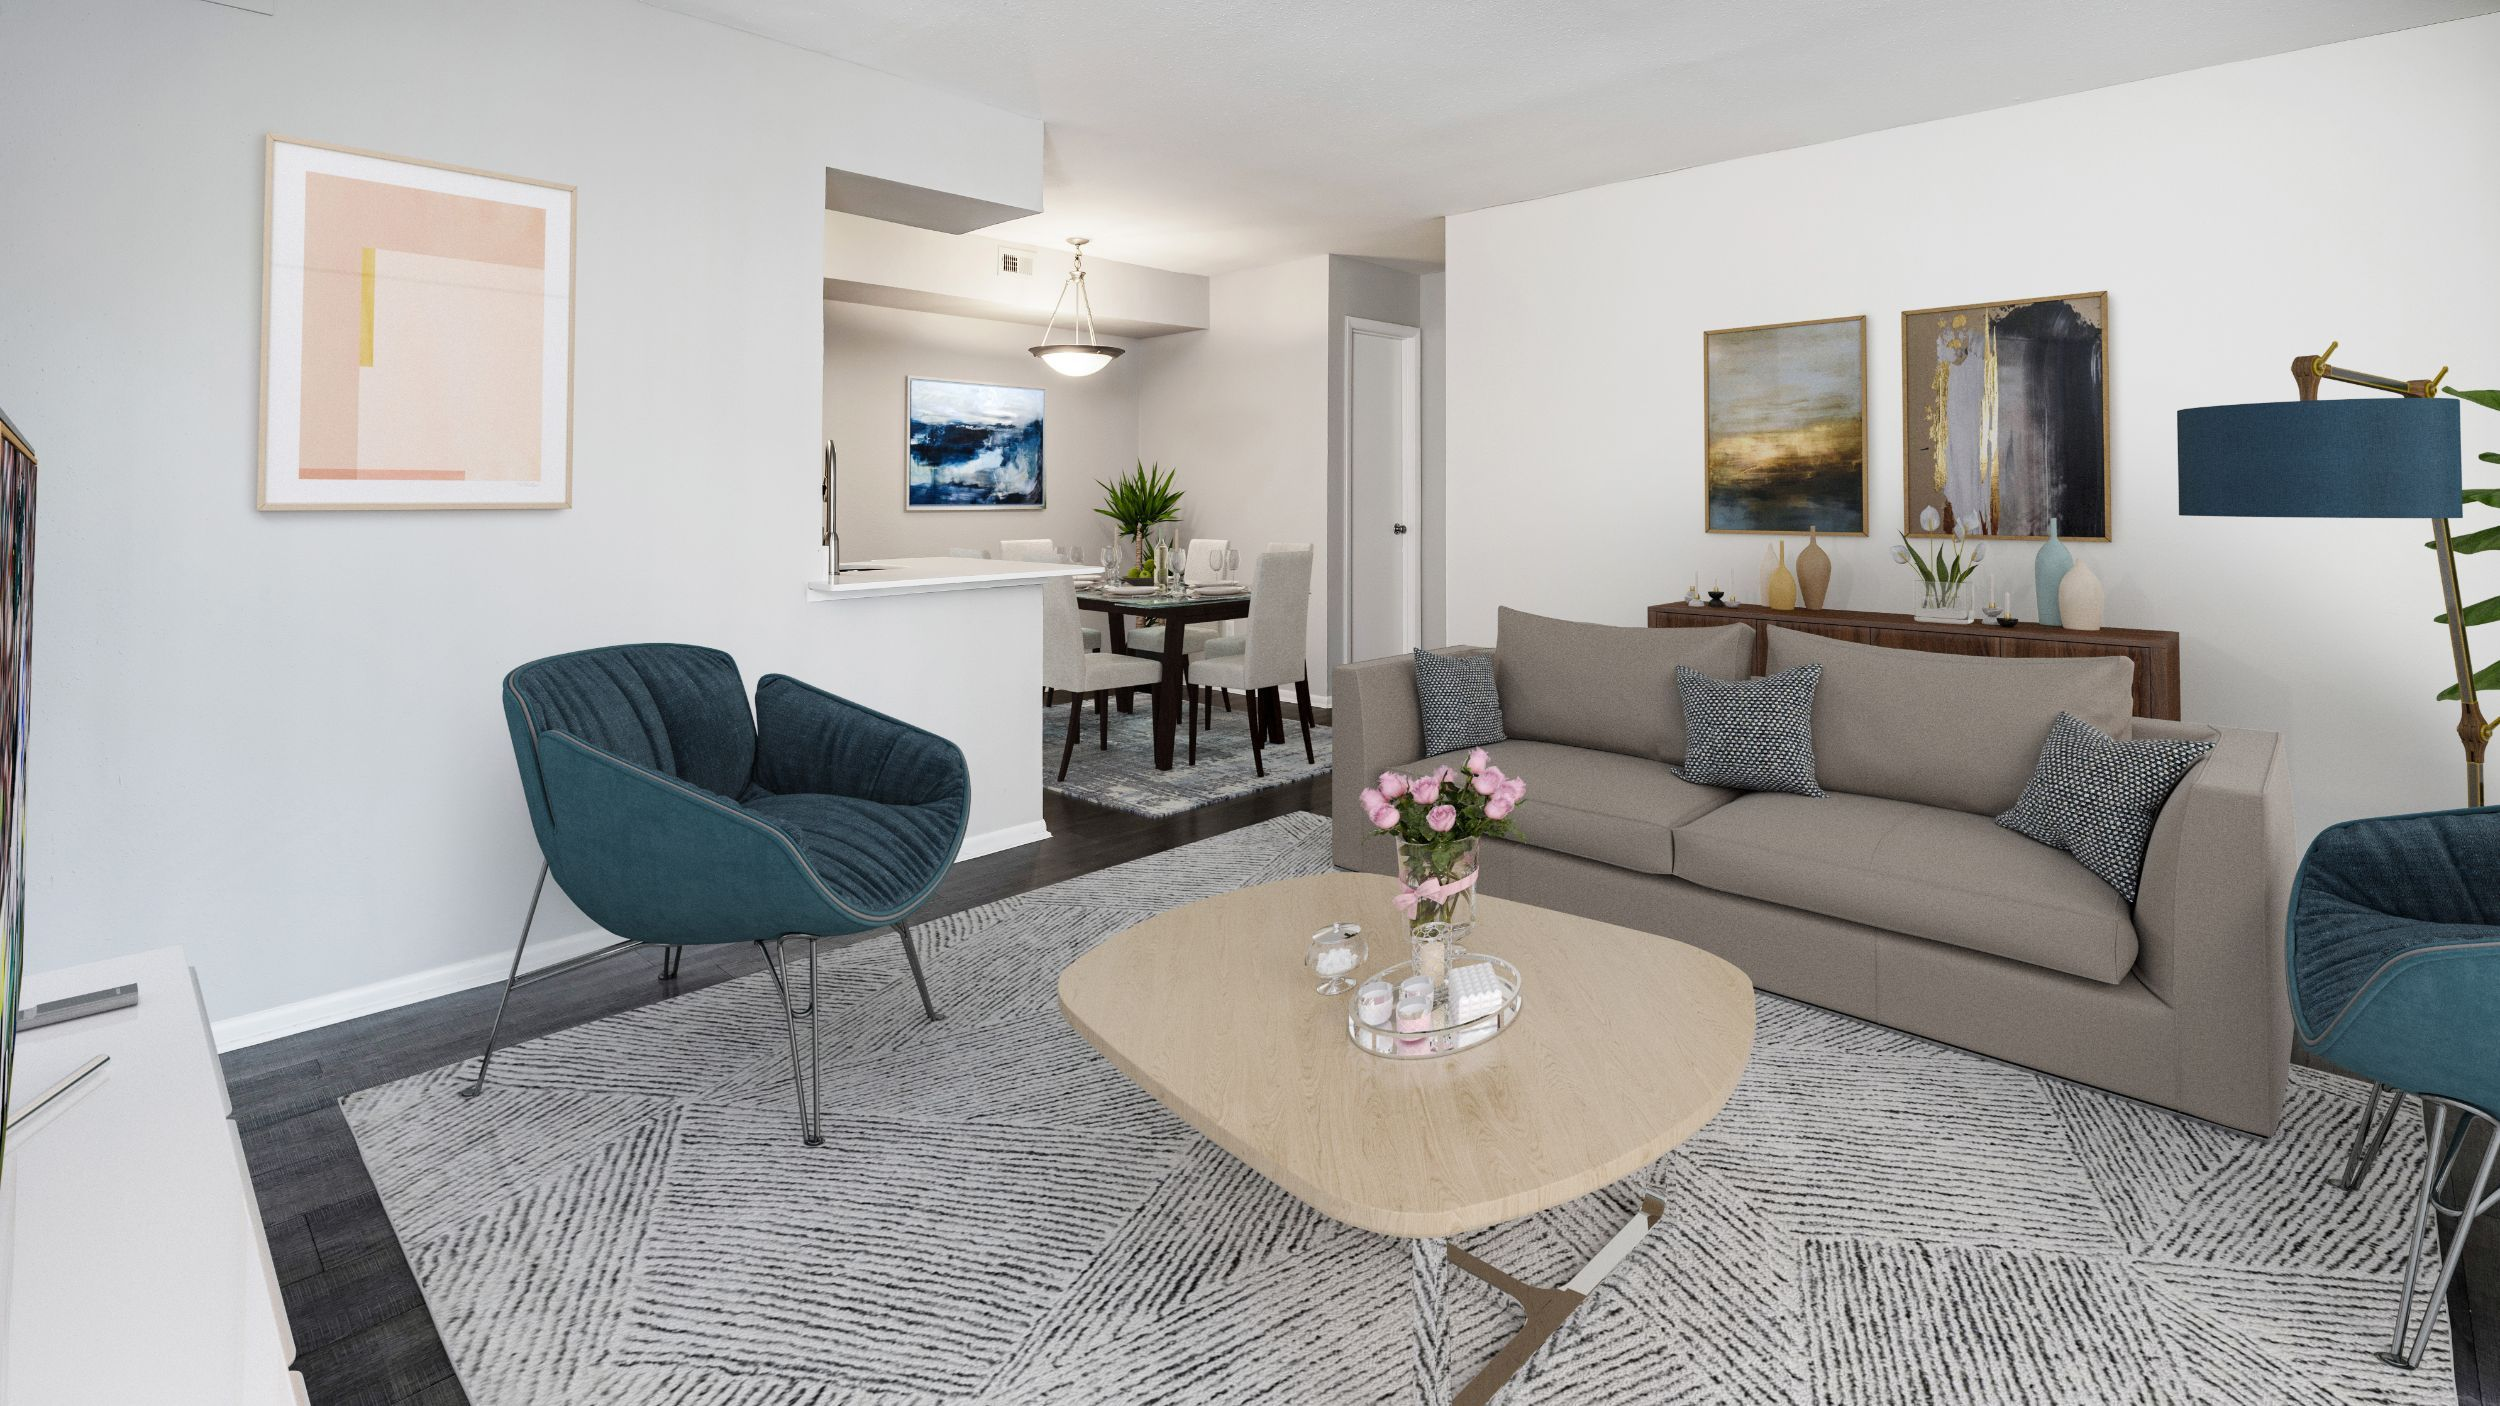 Apartment living room with seating and view of dining area